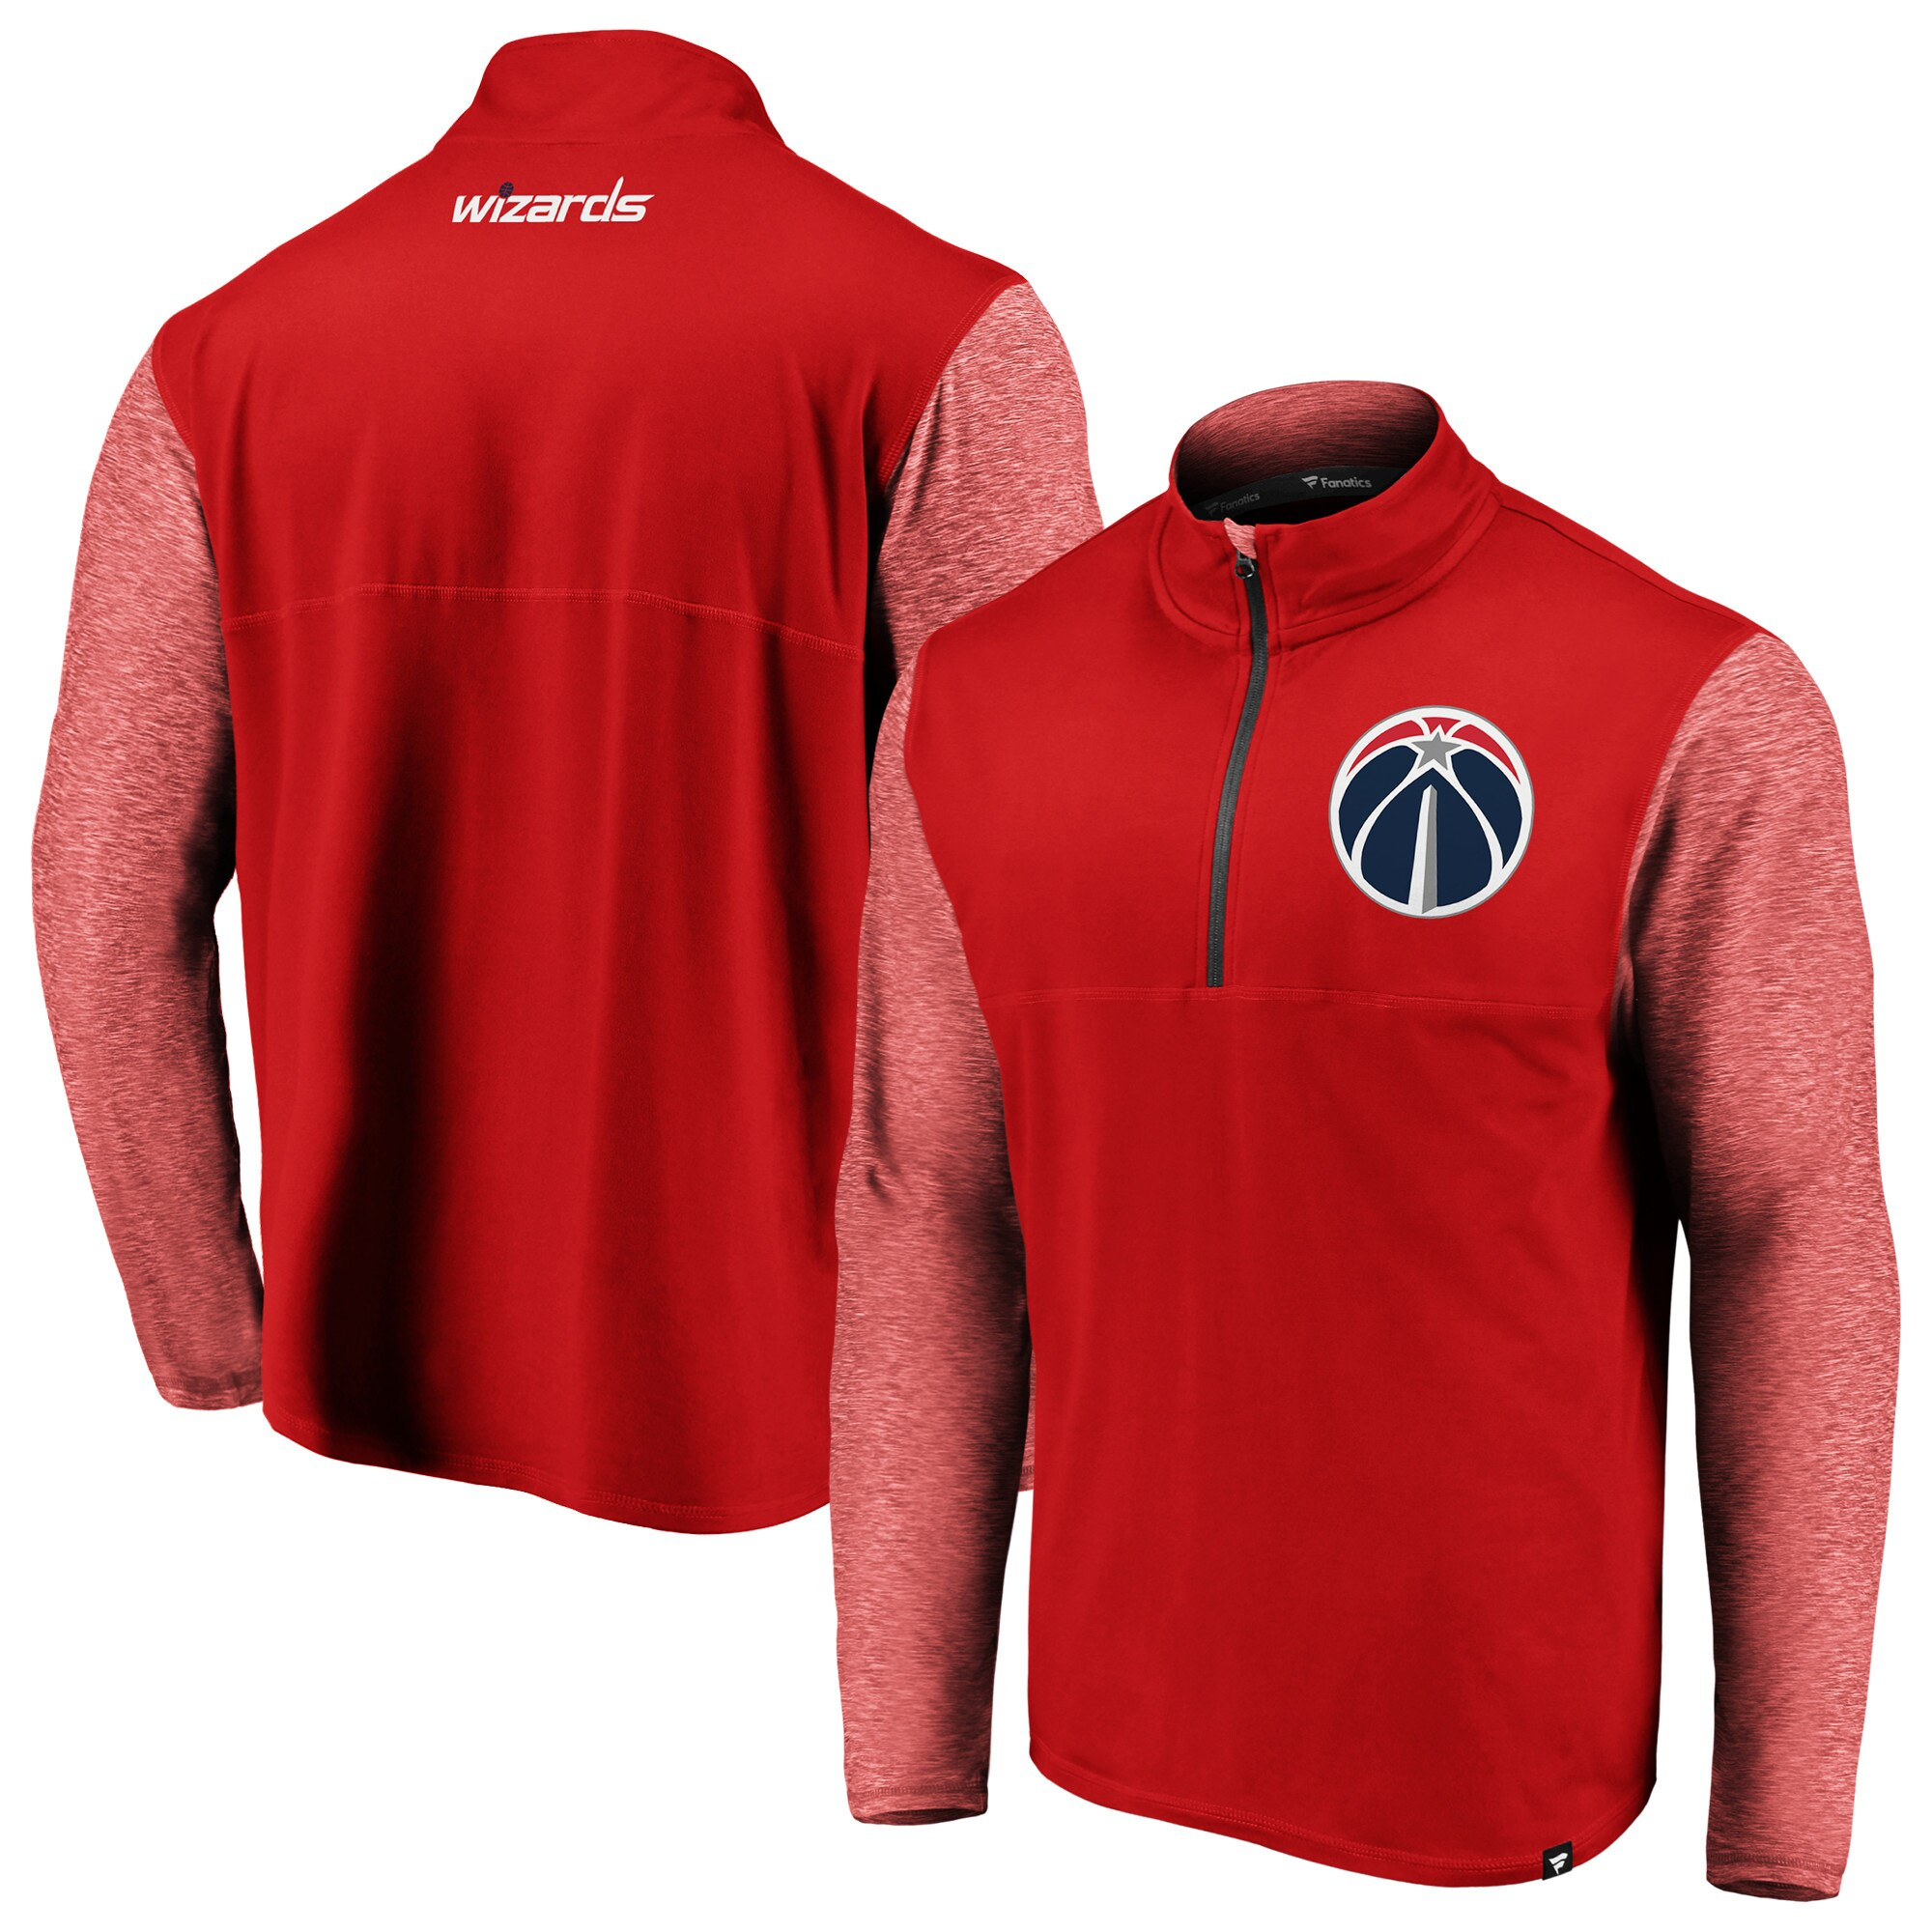 Washington Wizards Fanatics Branded Made to Move Static Performance Quarter-Zip Pullover Jacket - Red/Heathered Red